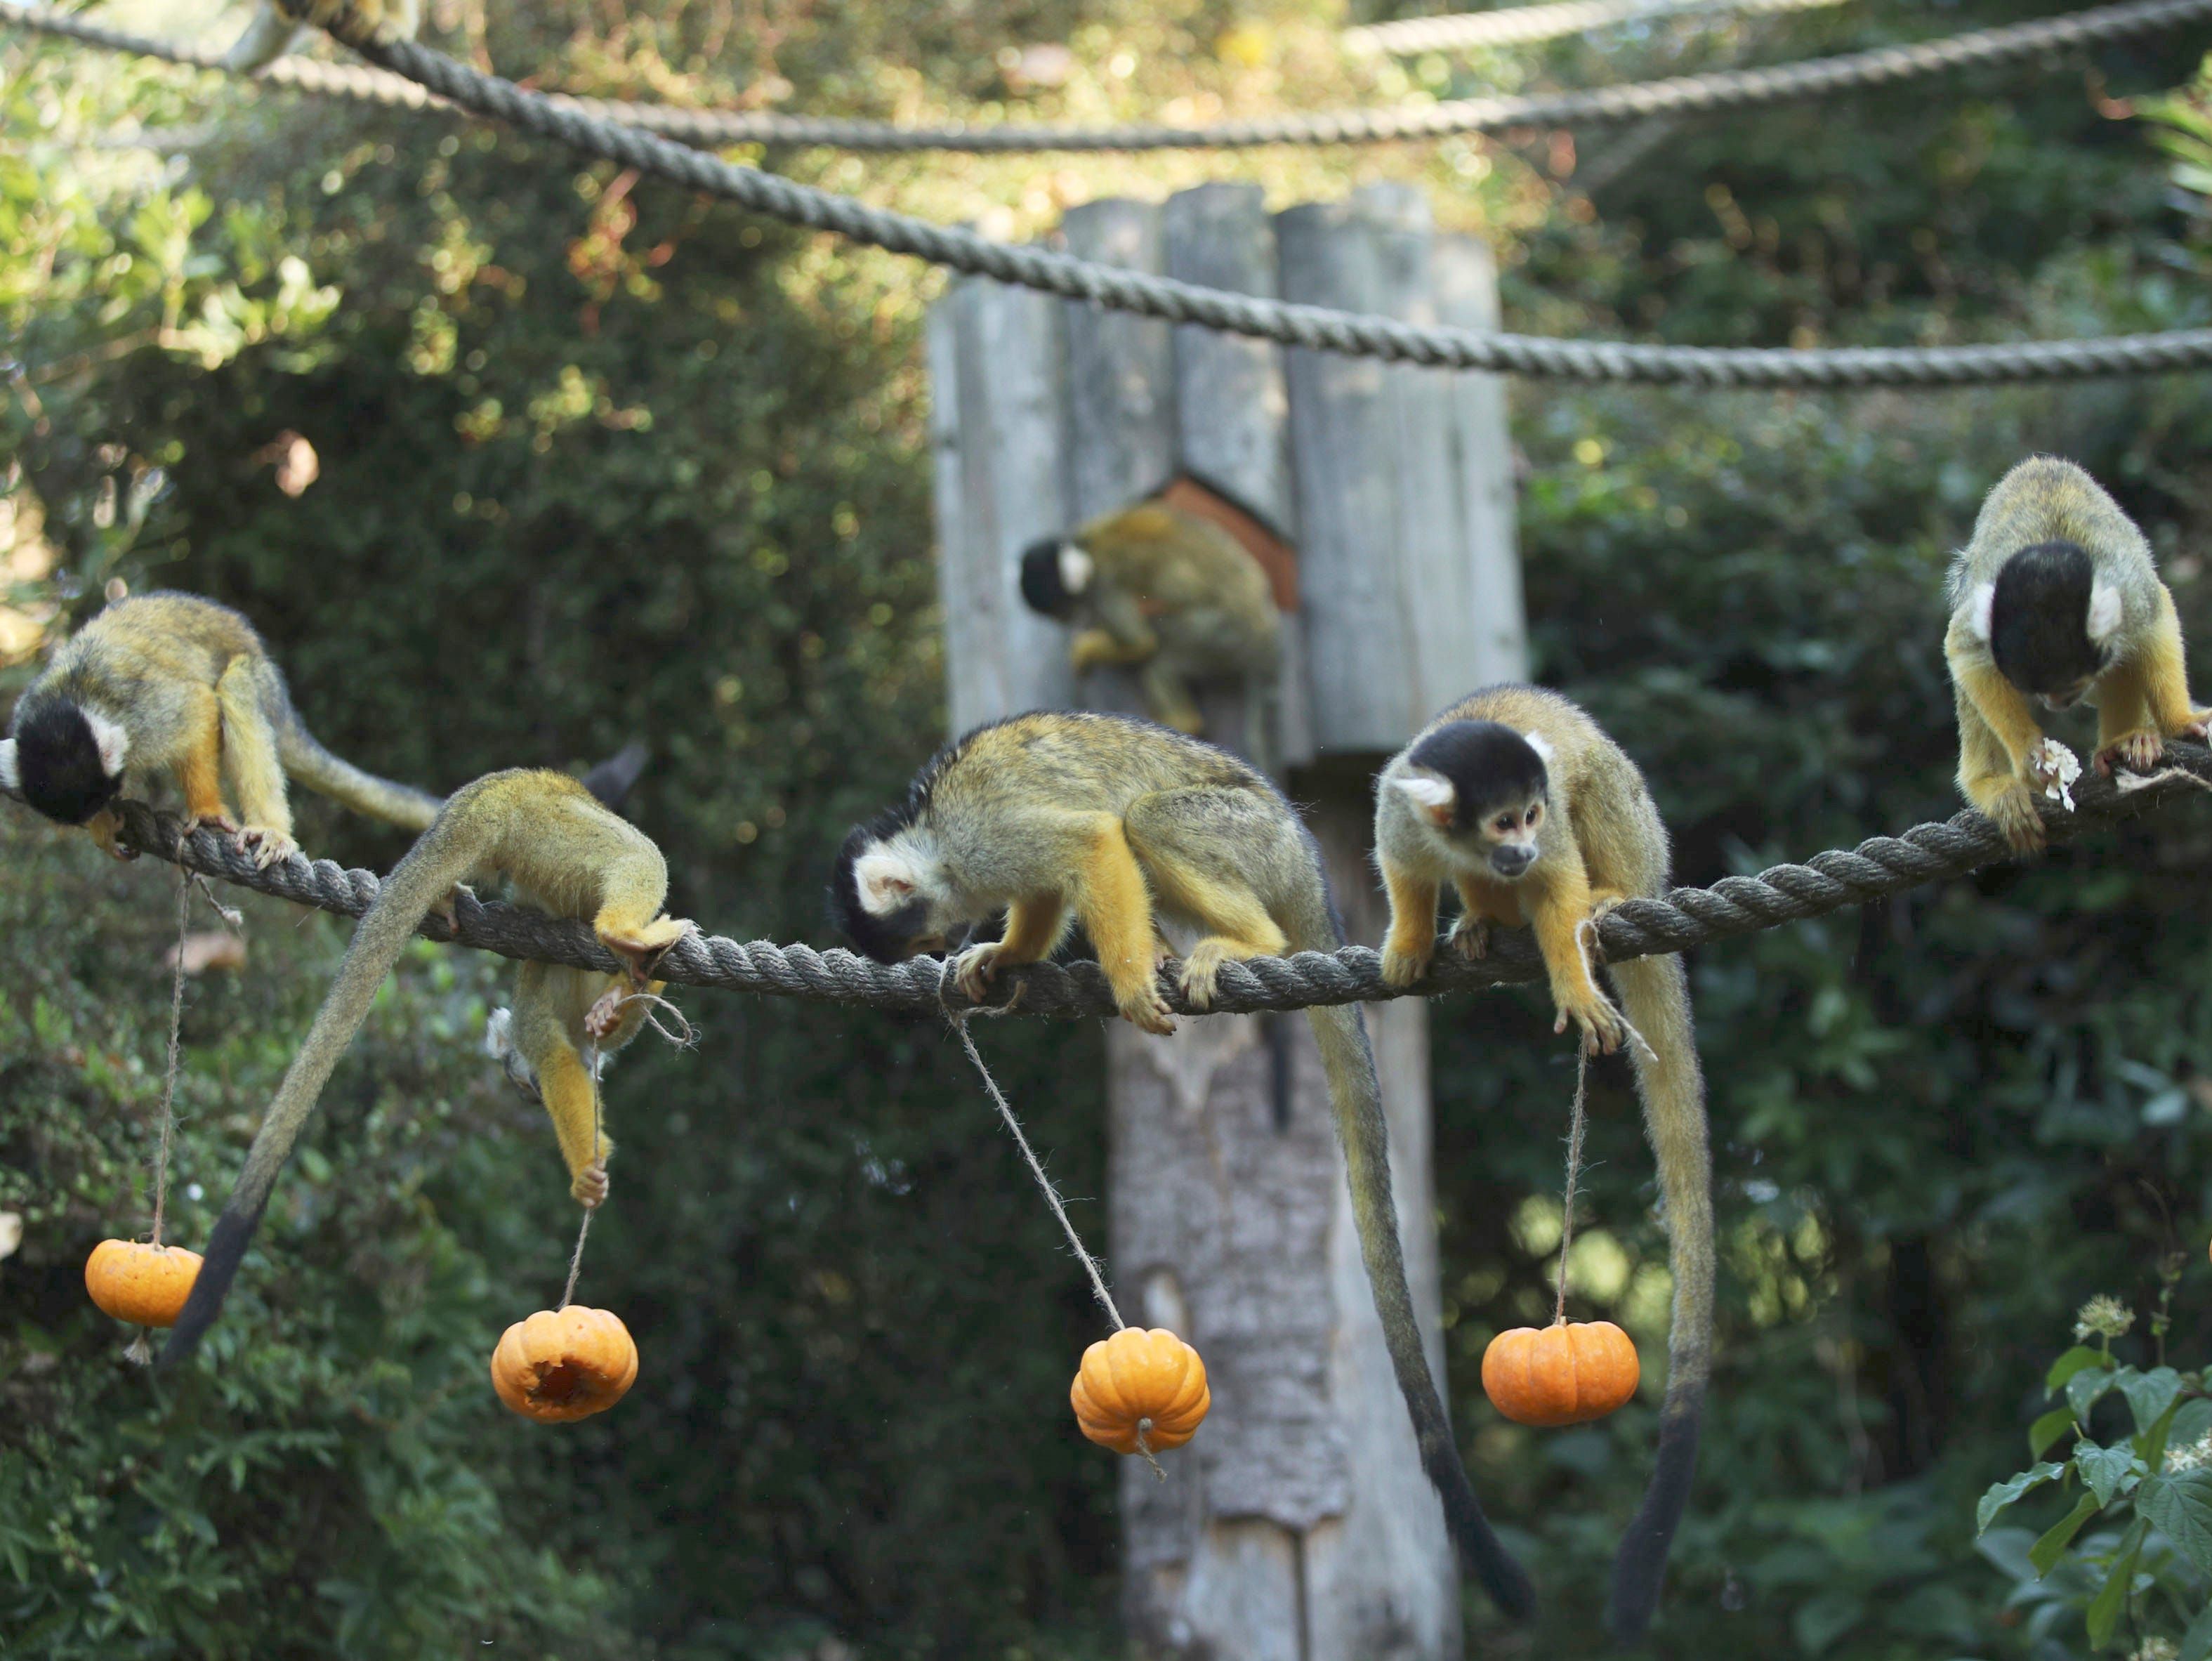 Squirrel monkeys search for Halloween treats hidden inside pumpkins, during a photo call ahead of Halloween, at London Zoo, in London, Thursday, Oct. 25, 2018.